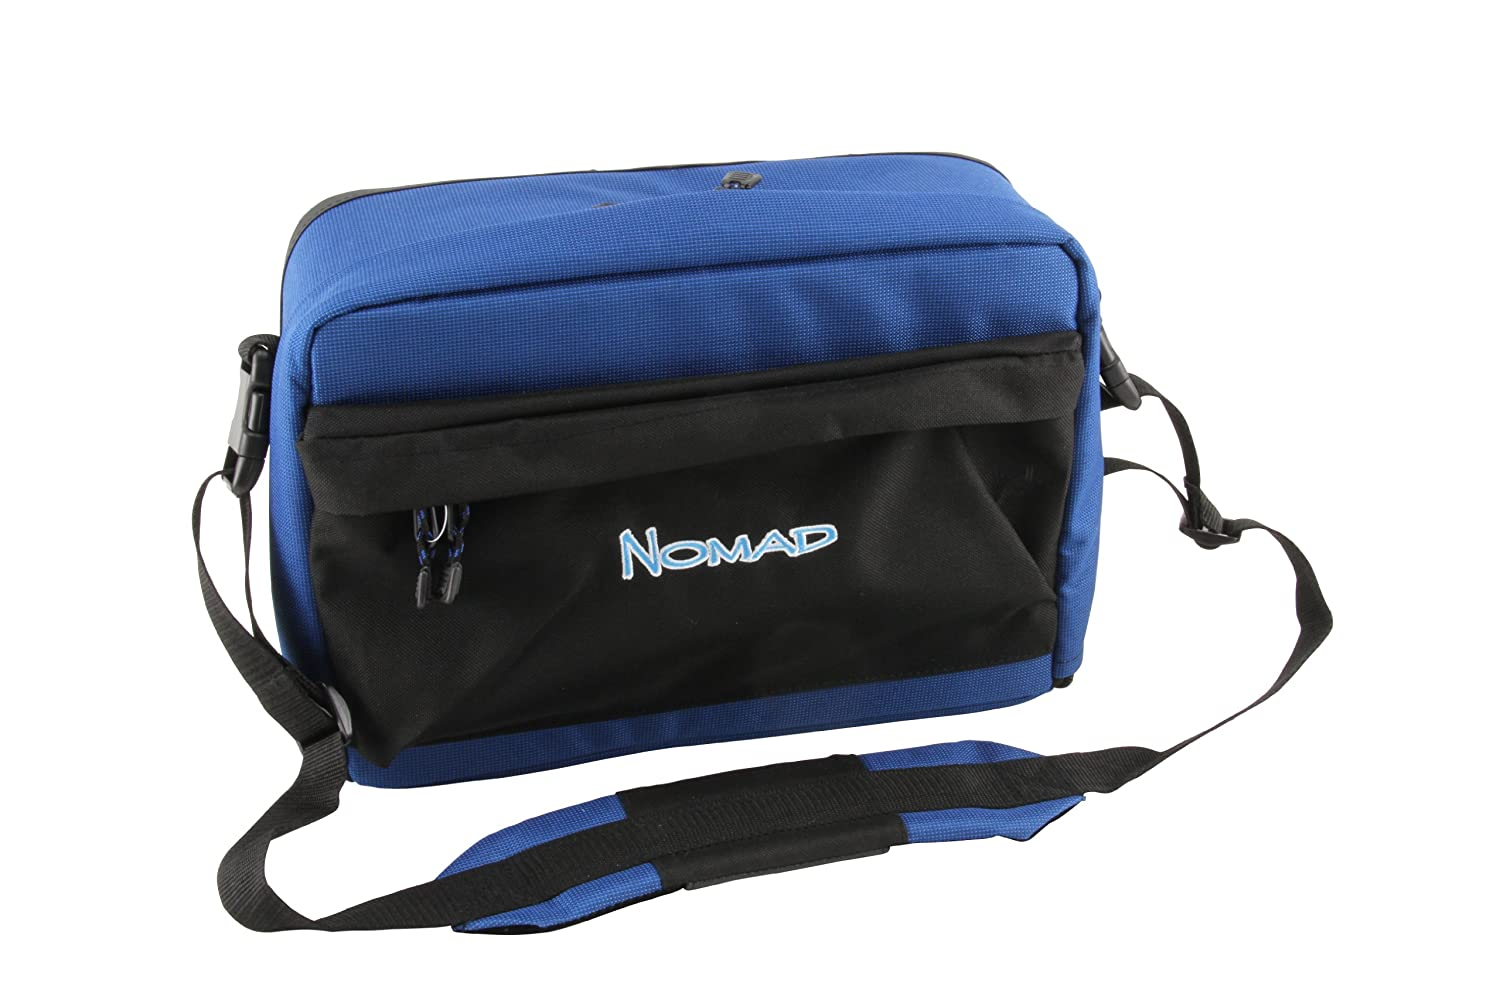 Okuma Fishing Tackle Nomad Travel Series Reel Bag ANT-RBL